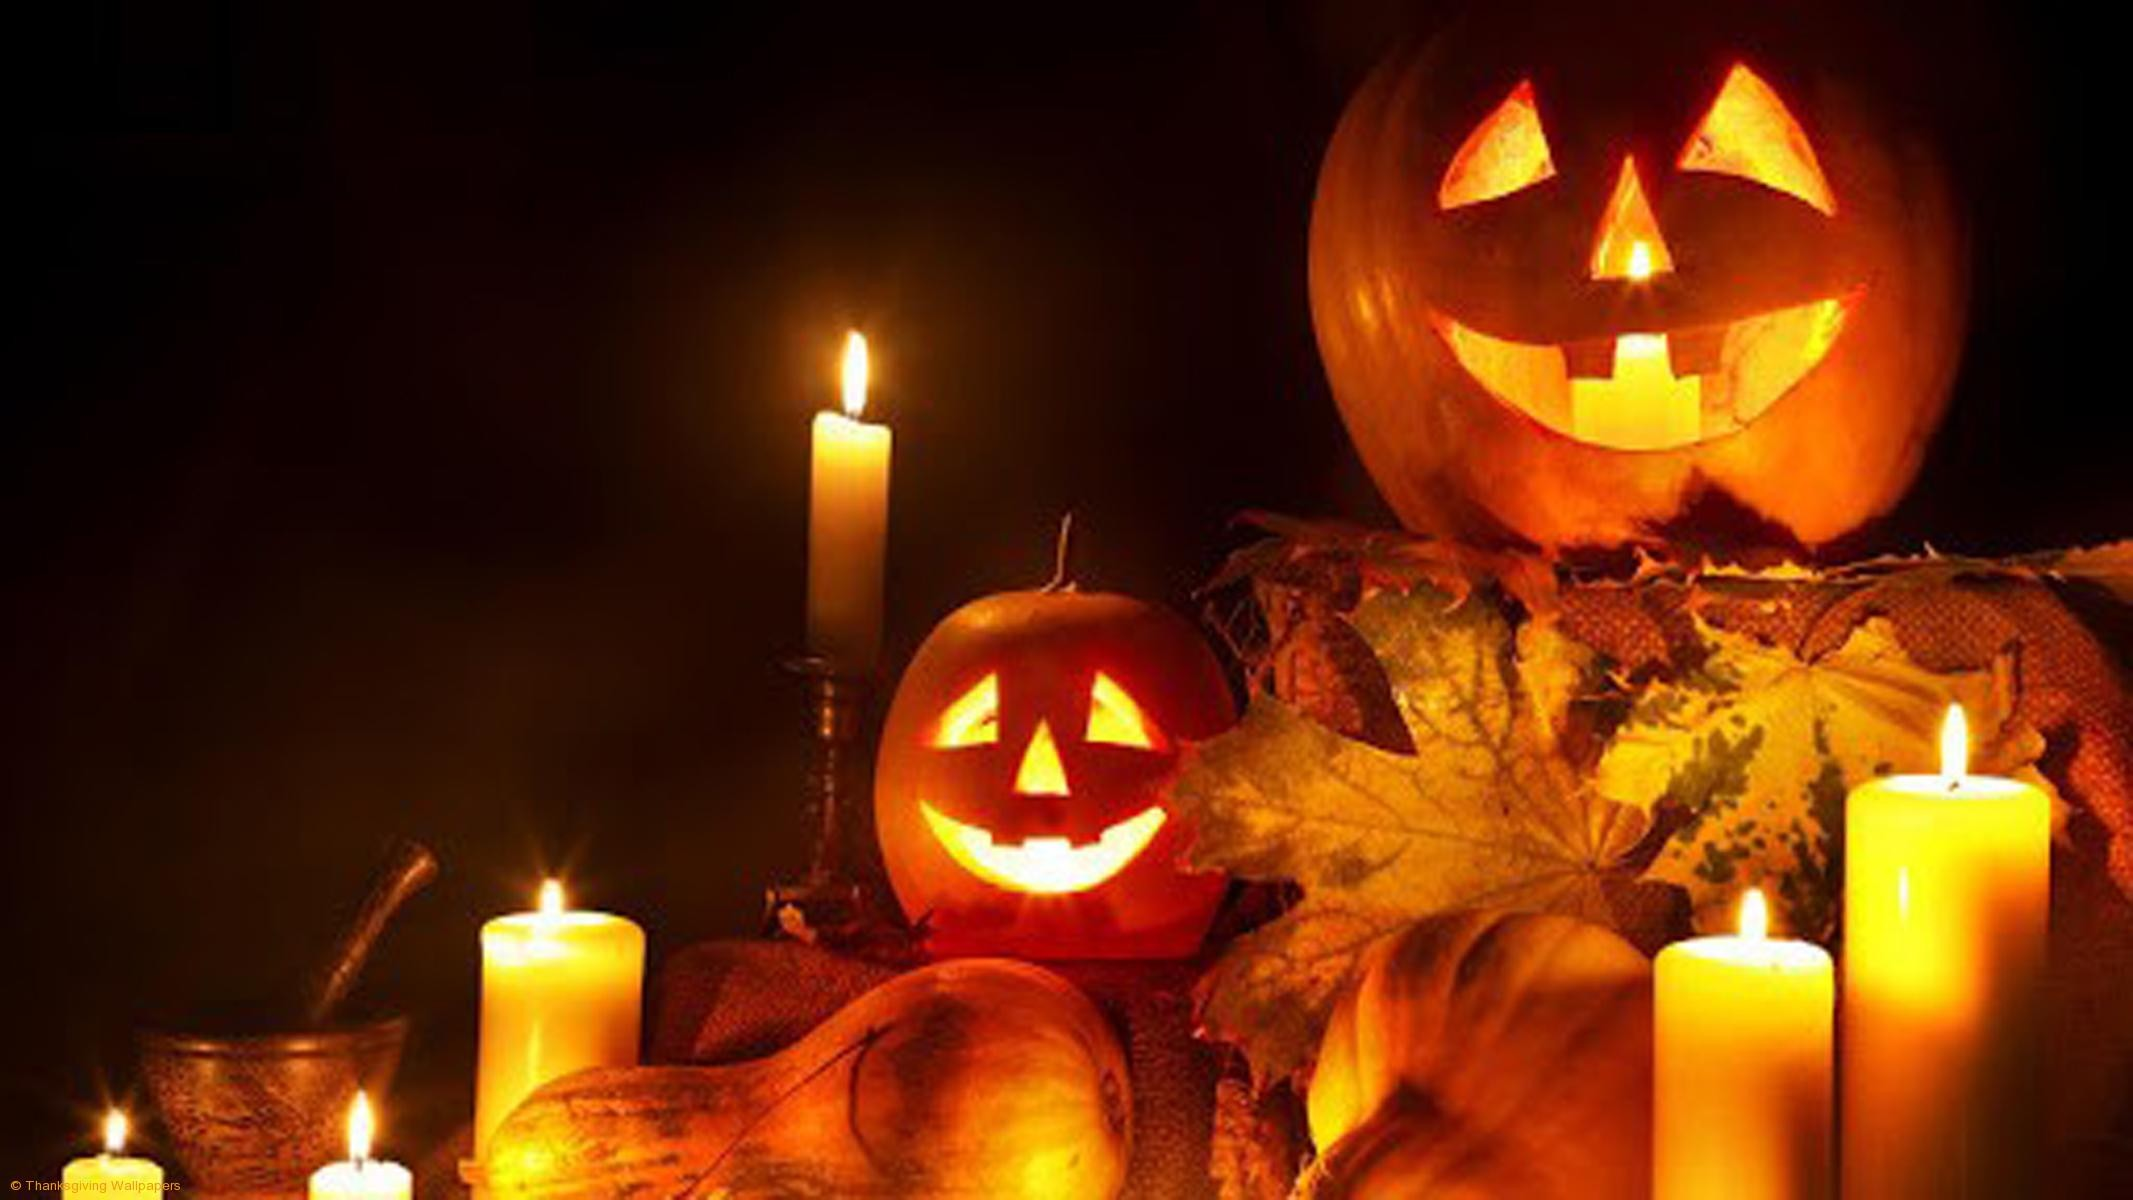 Pumpkin wallpaper download free beautiful wallpapers for desktop and mobile devices in any - Fall wallpaper pumpkins ...